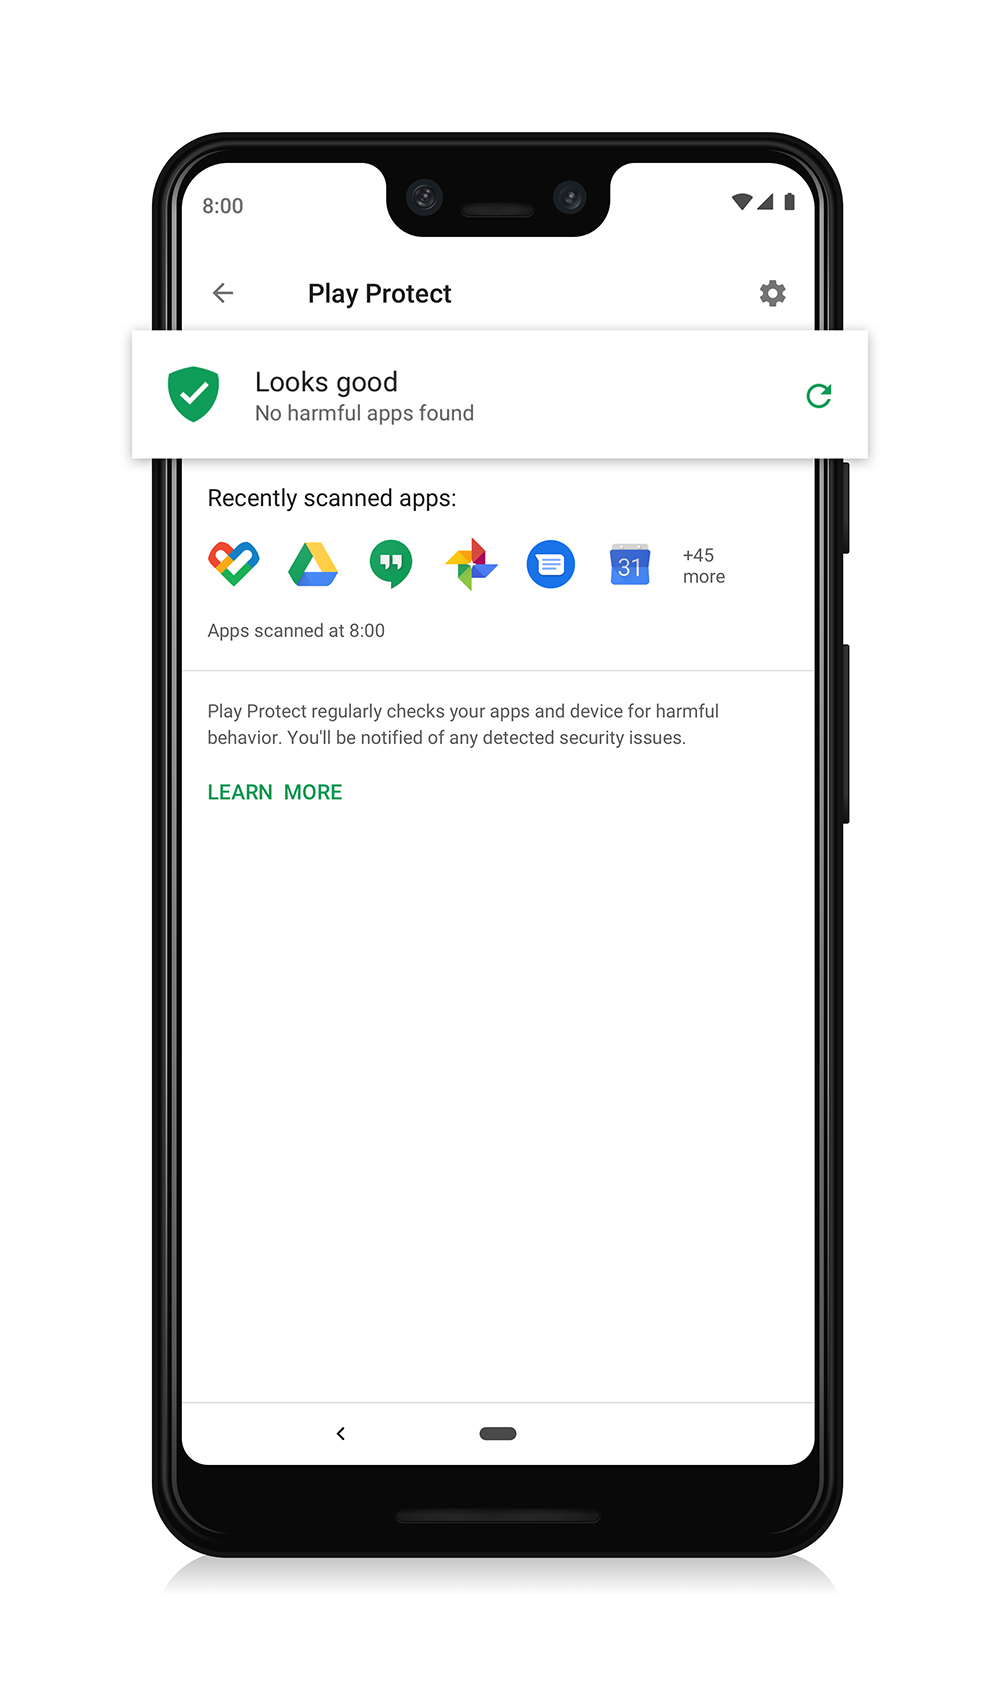 Cloud-based protections | Play Protect | Google Developers